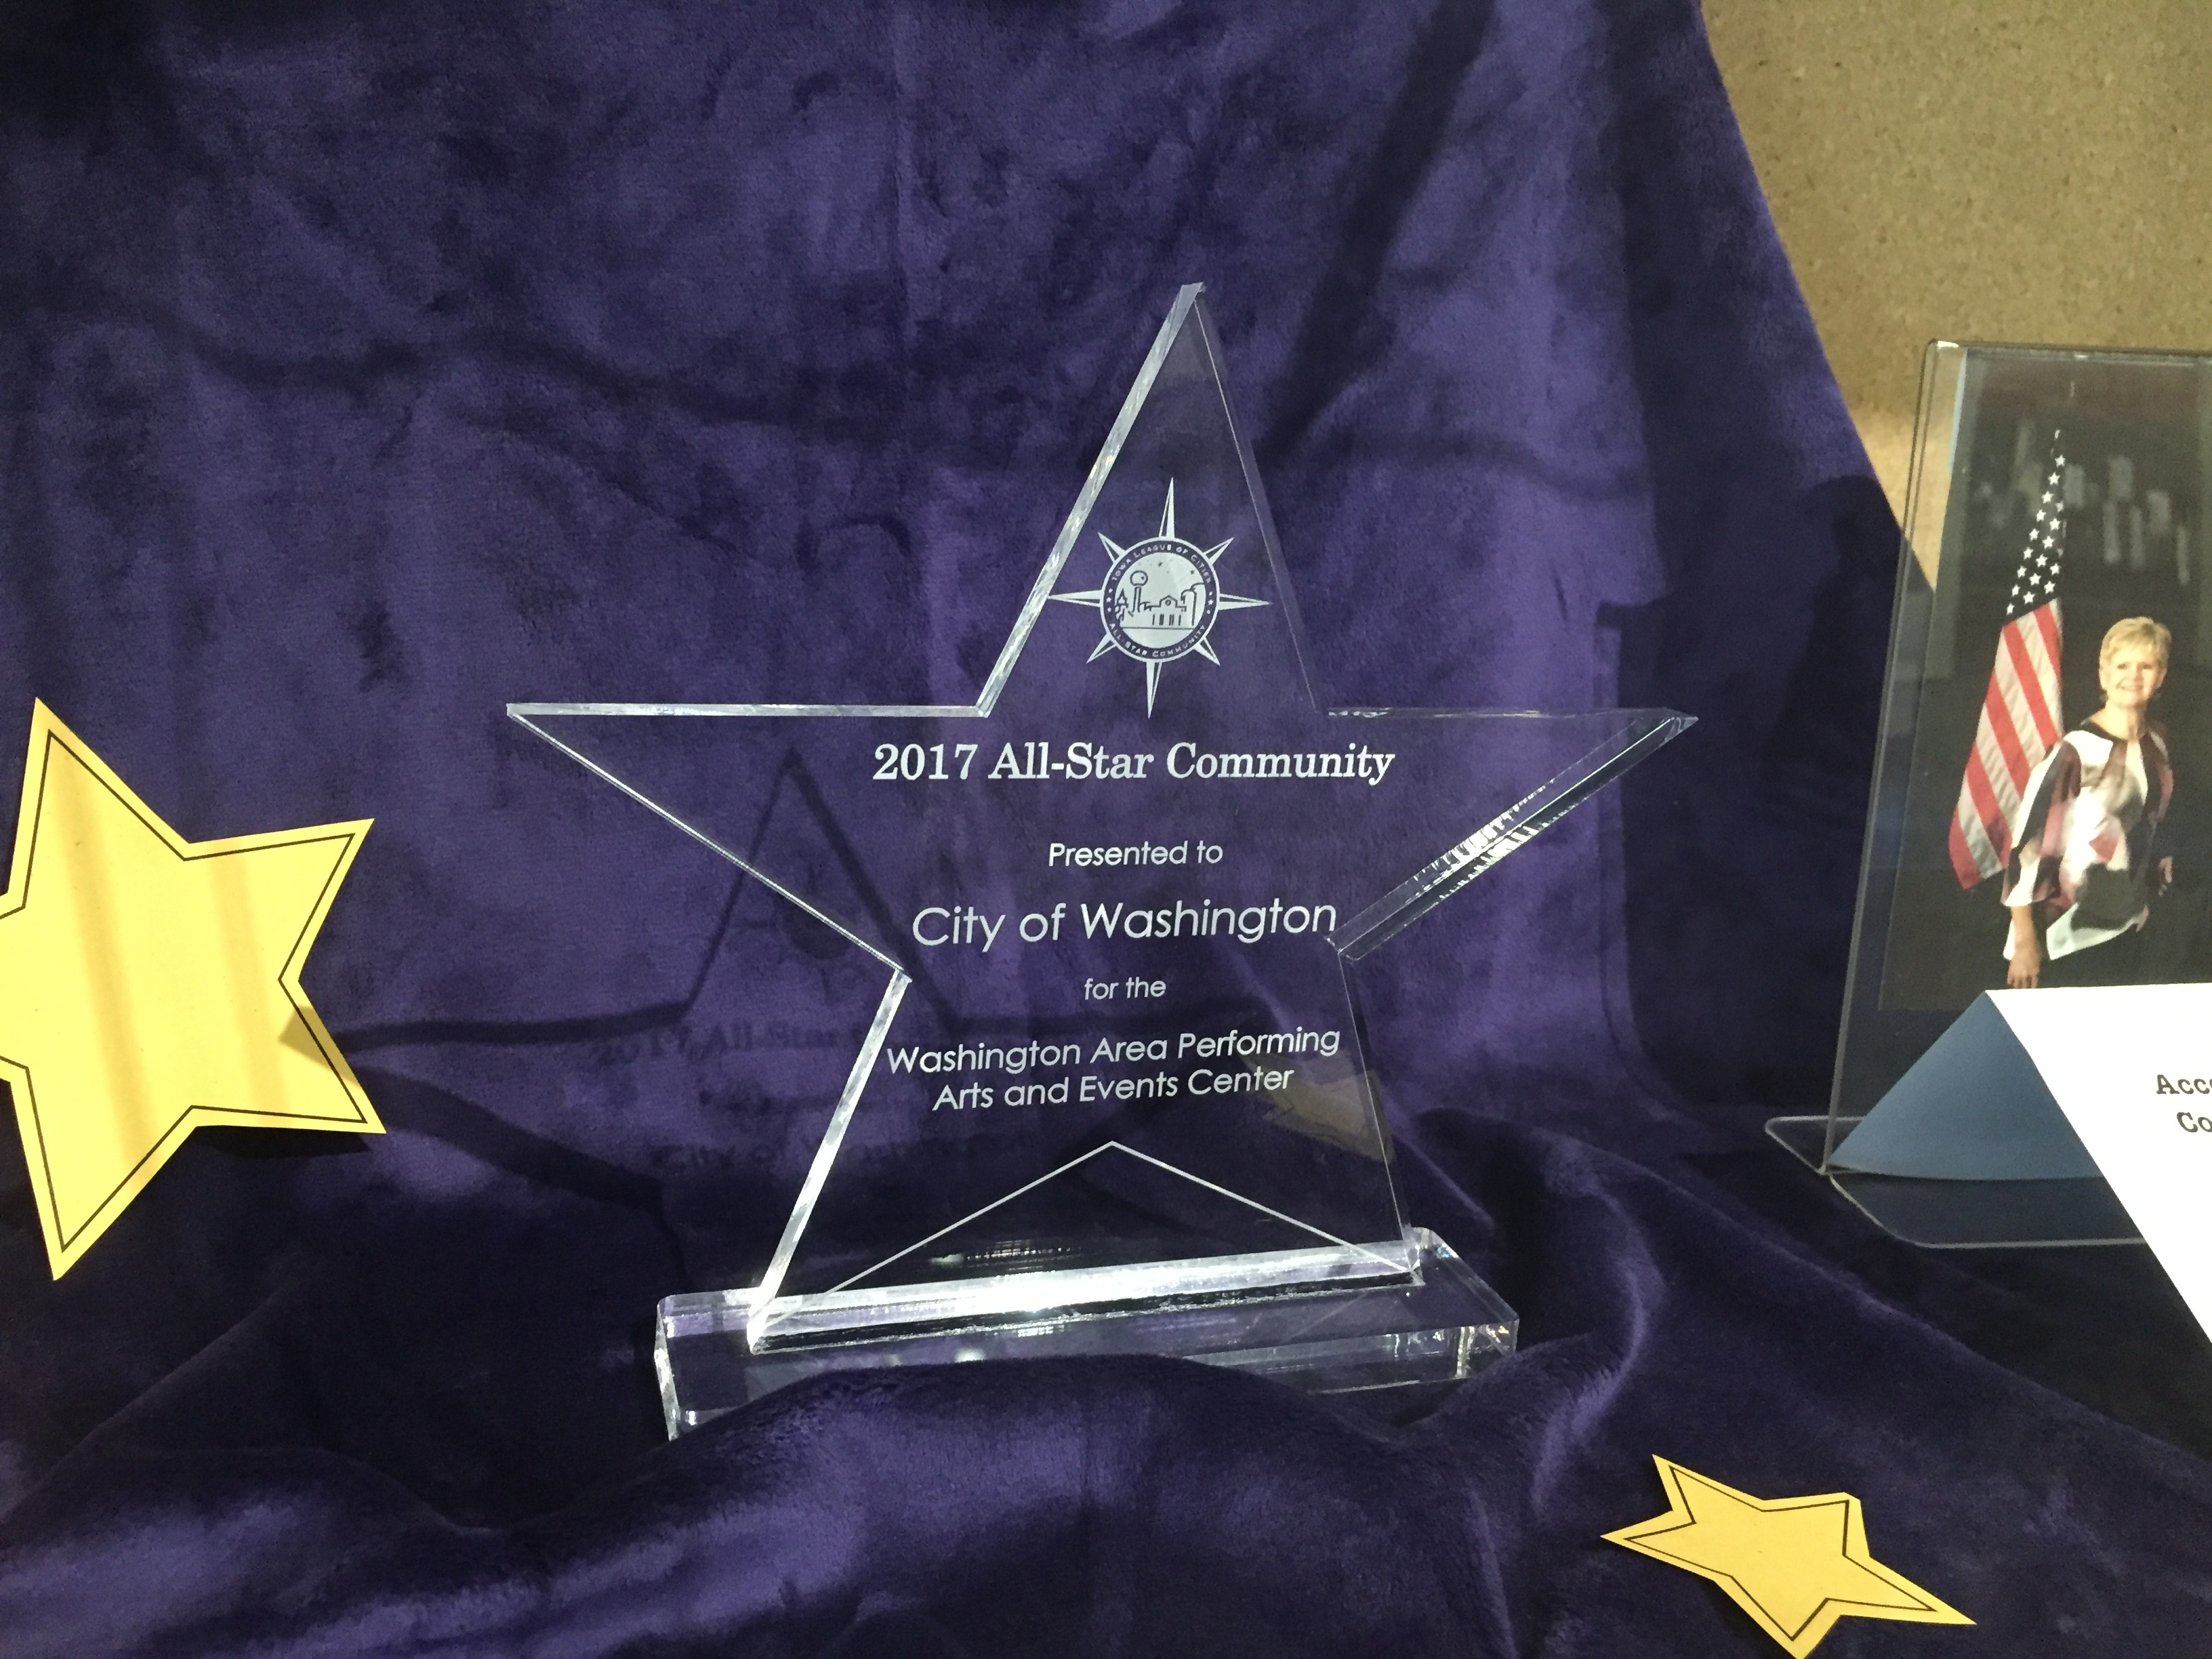 Washington Named 2017 All-Star Community by Iowa League of Cities